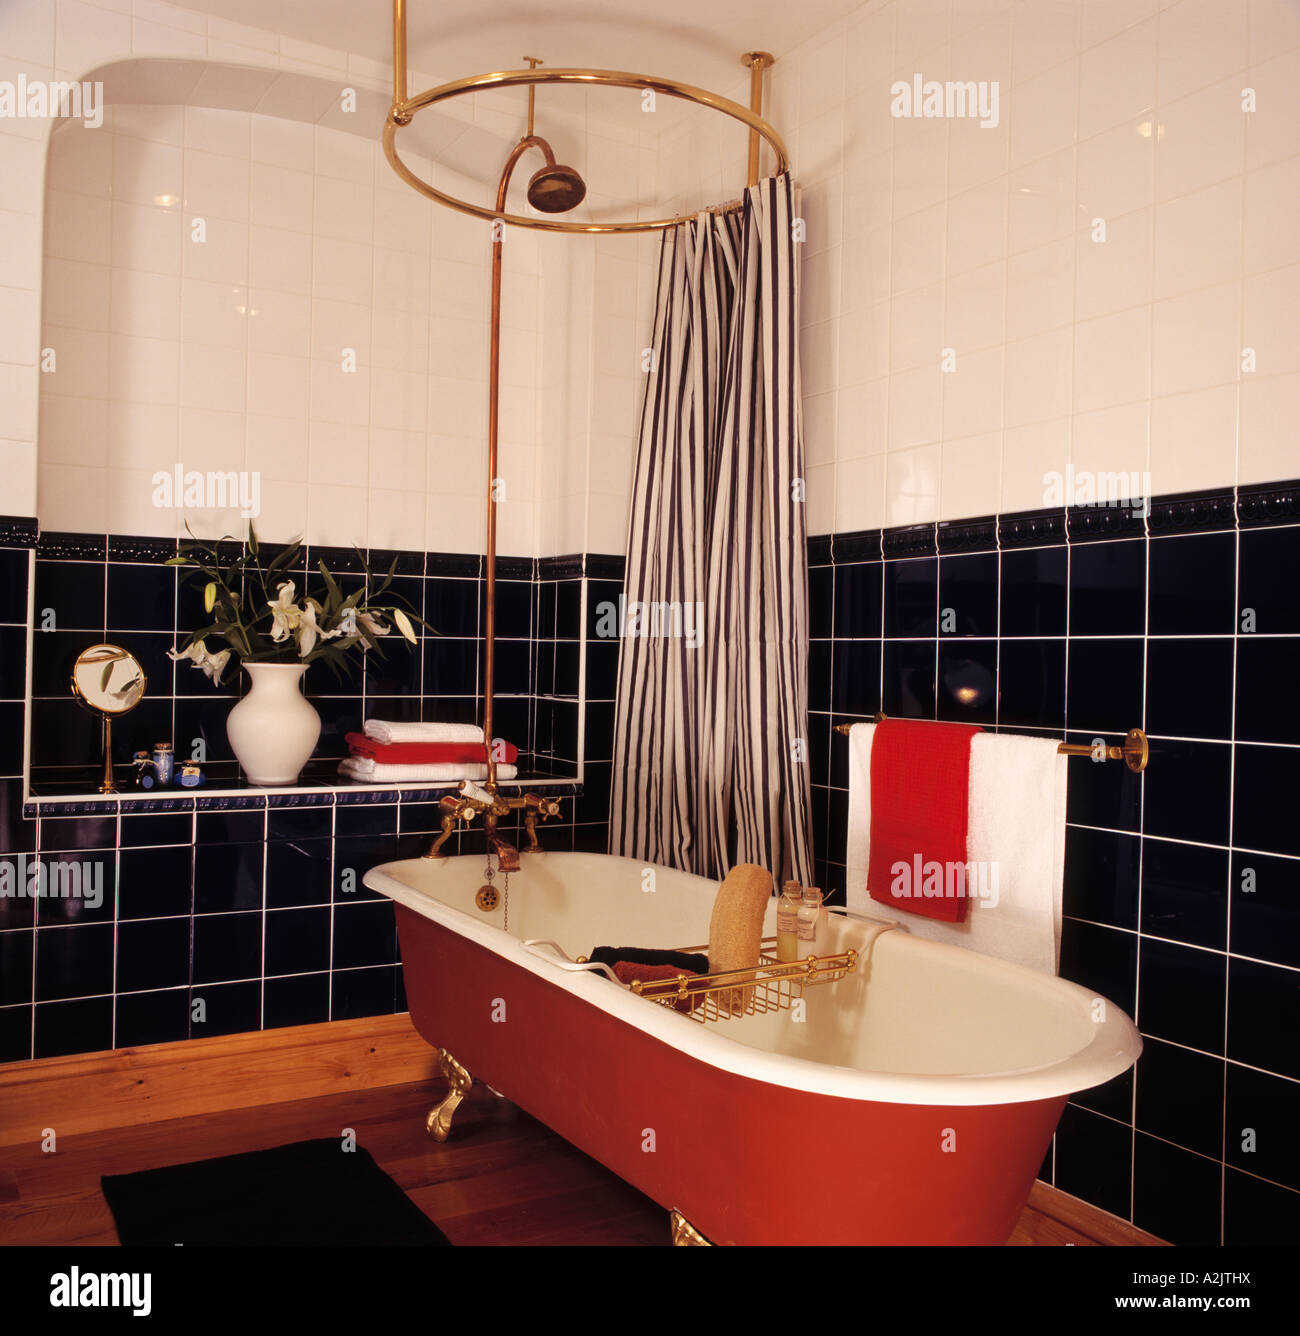 striped shower curtain on circular rail above red. Black Bedroom Furniture Sets. Home Design Ideas